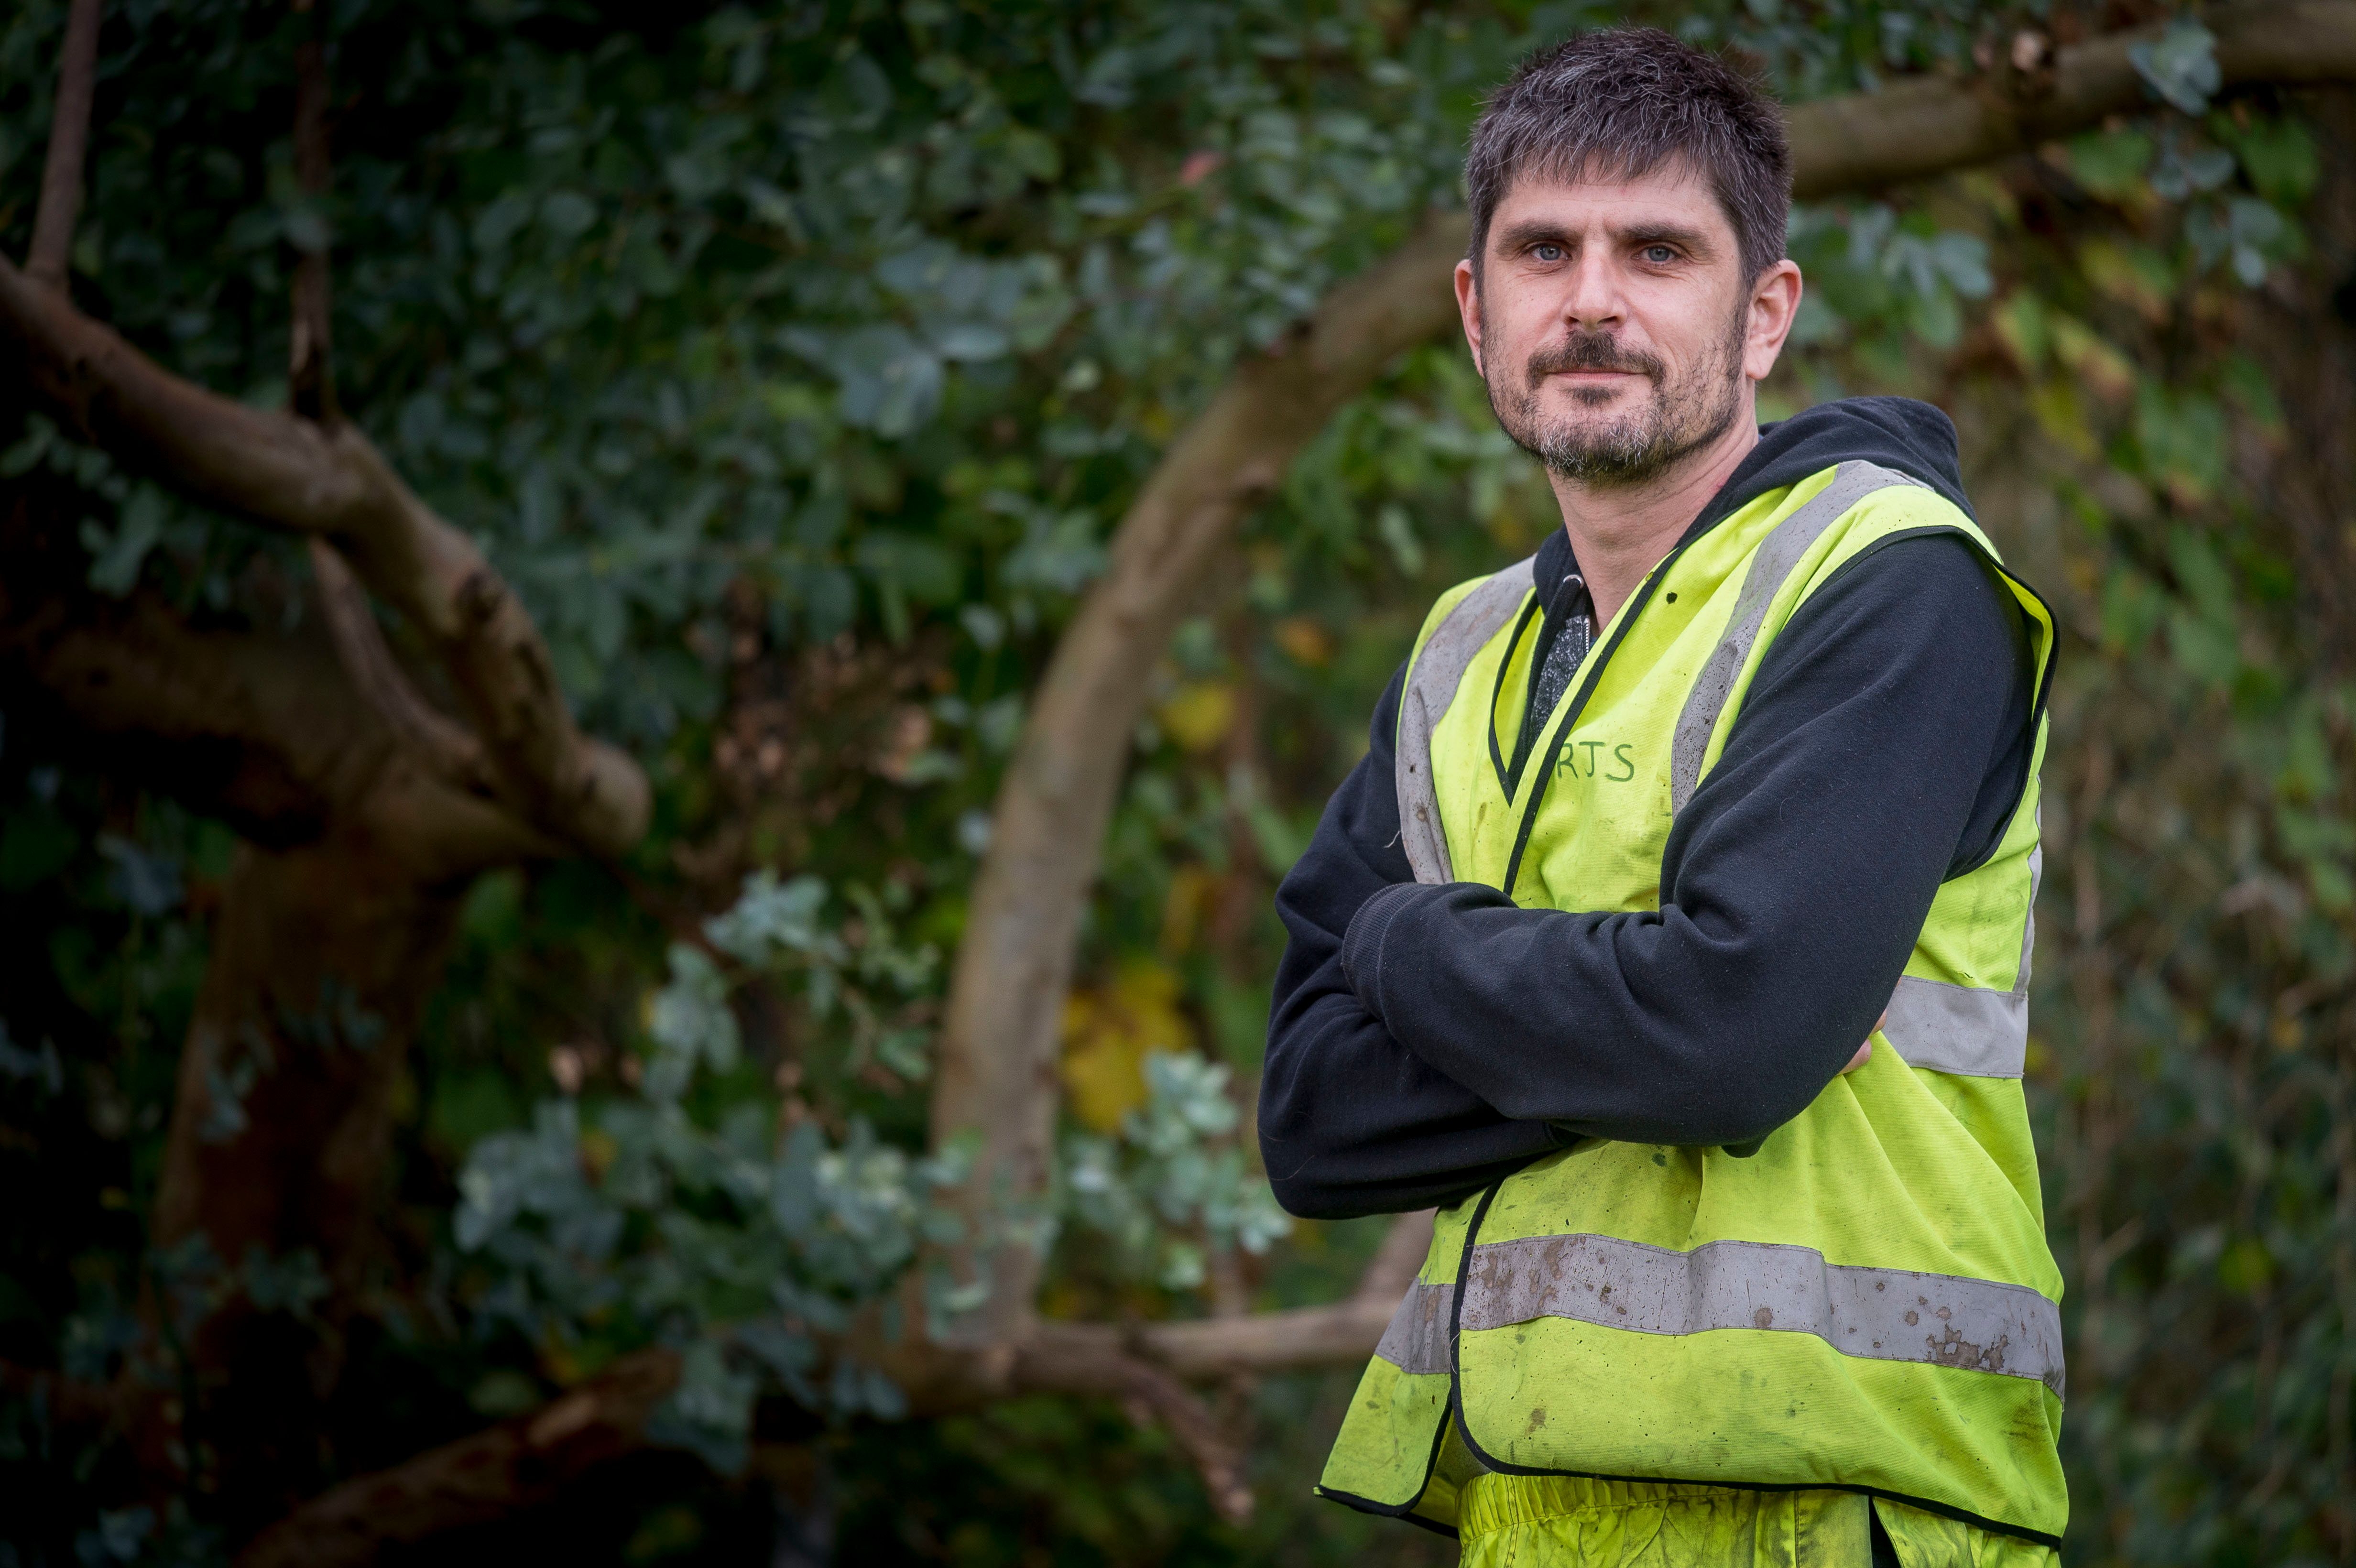 Self-employed welder Andrew White from Gorelston, Norfolk, was told by officials he would be better off jobless as a result of an 'unfair' Universal Credit rule.